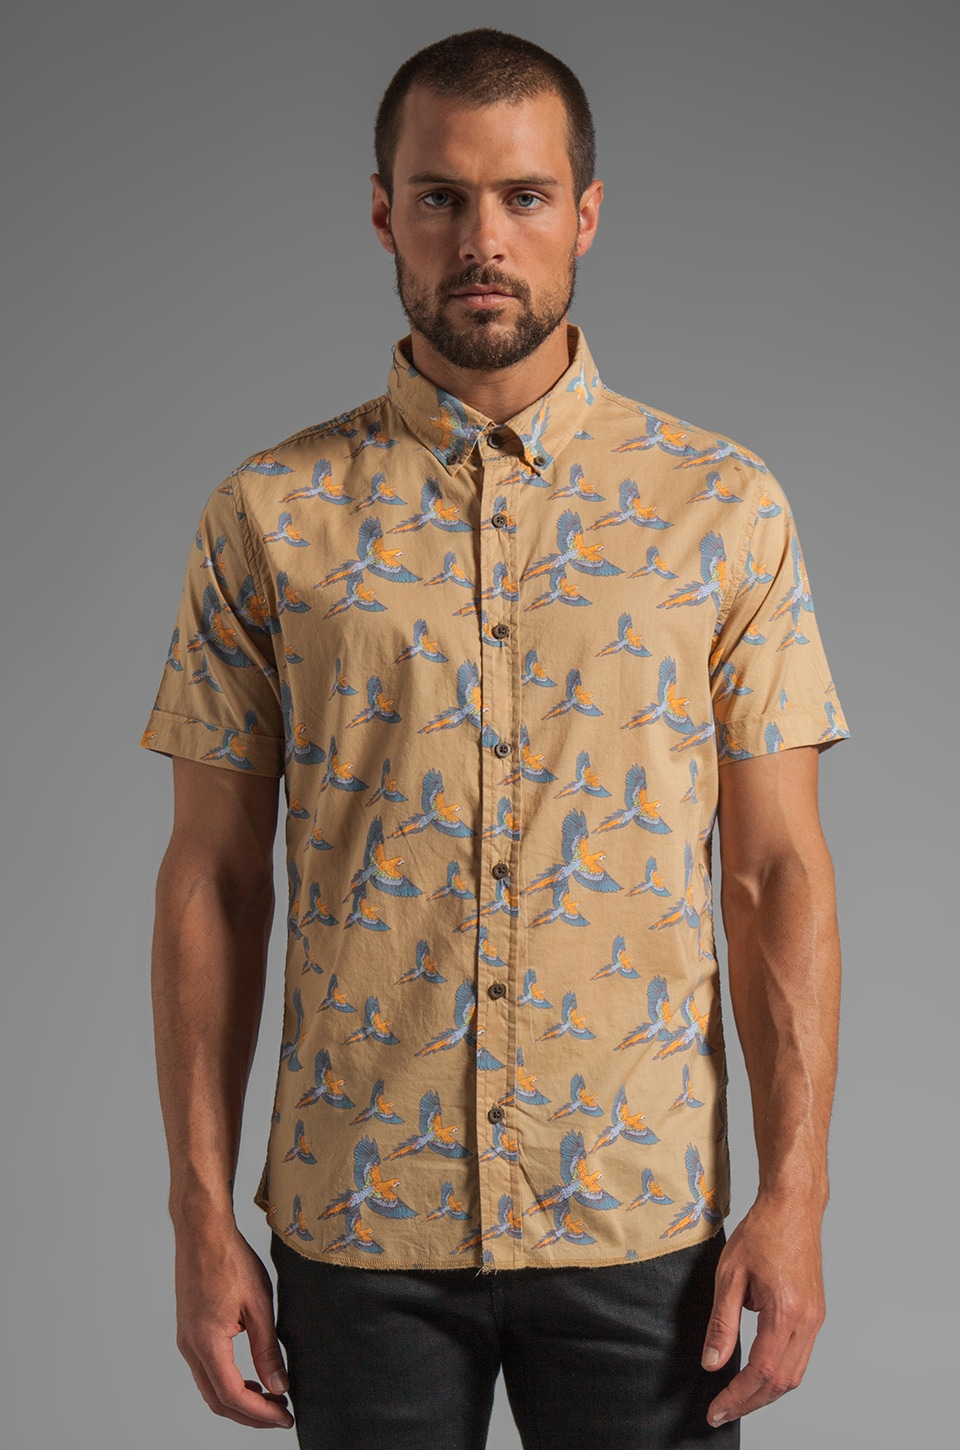 Zanerobe Pirate S/S Shirt in Cashew